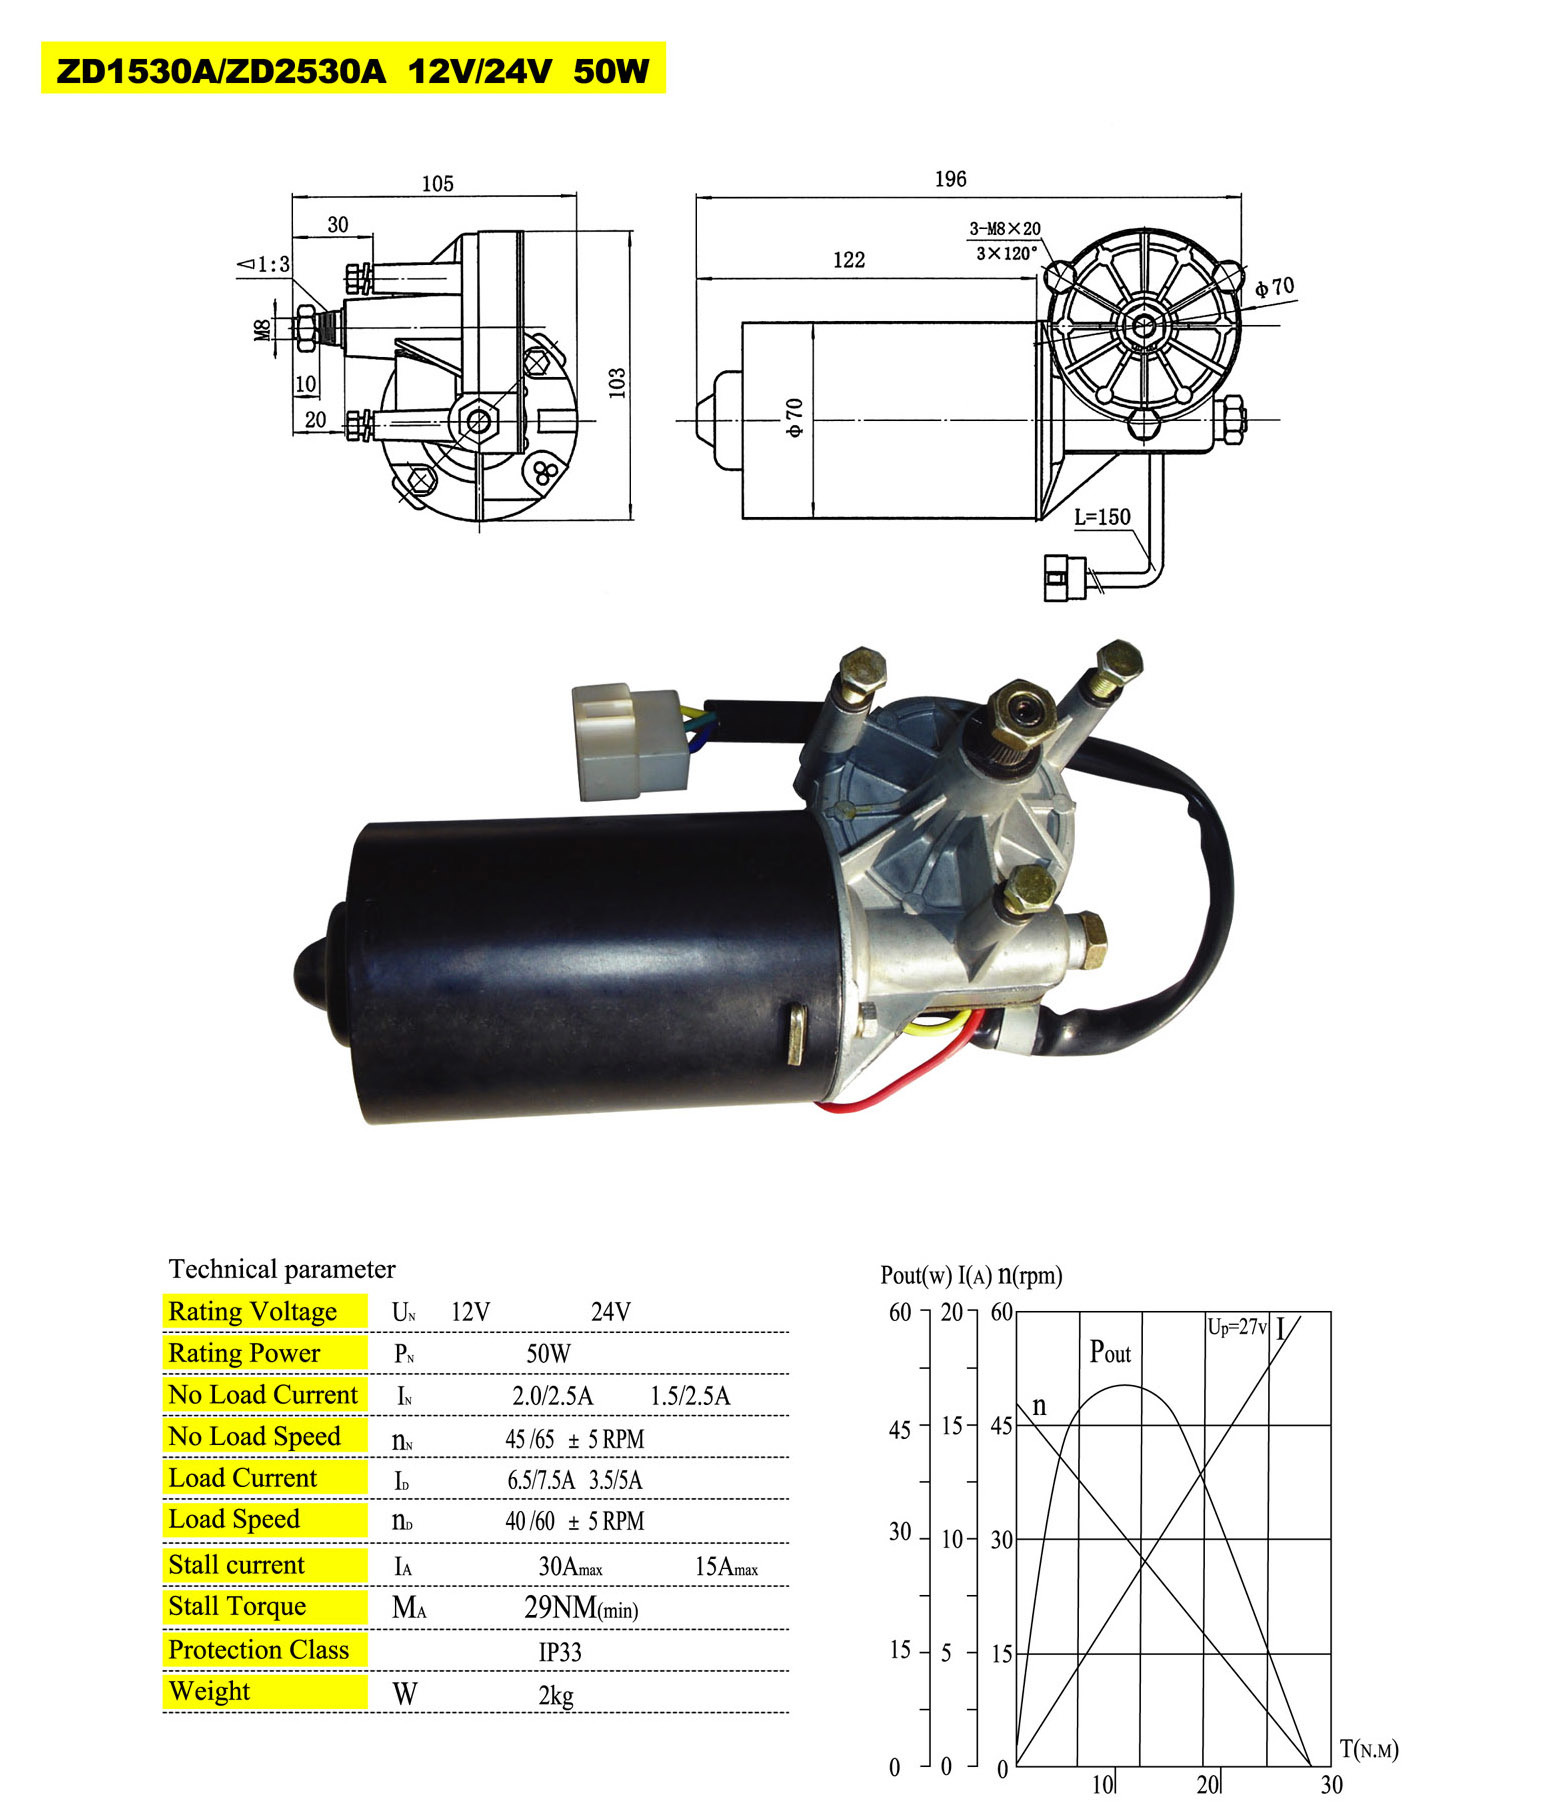 29 nm 50w doga type wiper motor for truck, bus and special vehicles,  1500000 cycles guaranteed